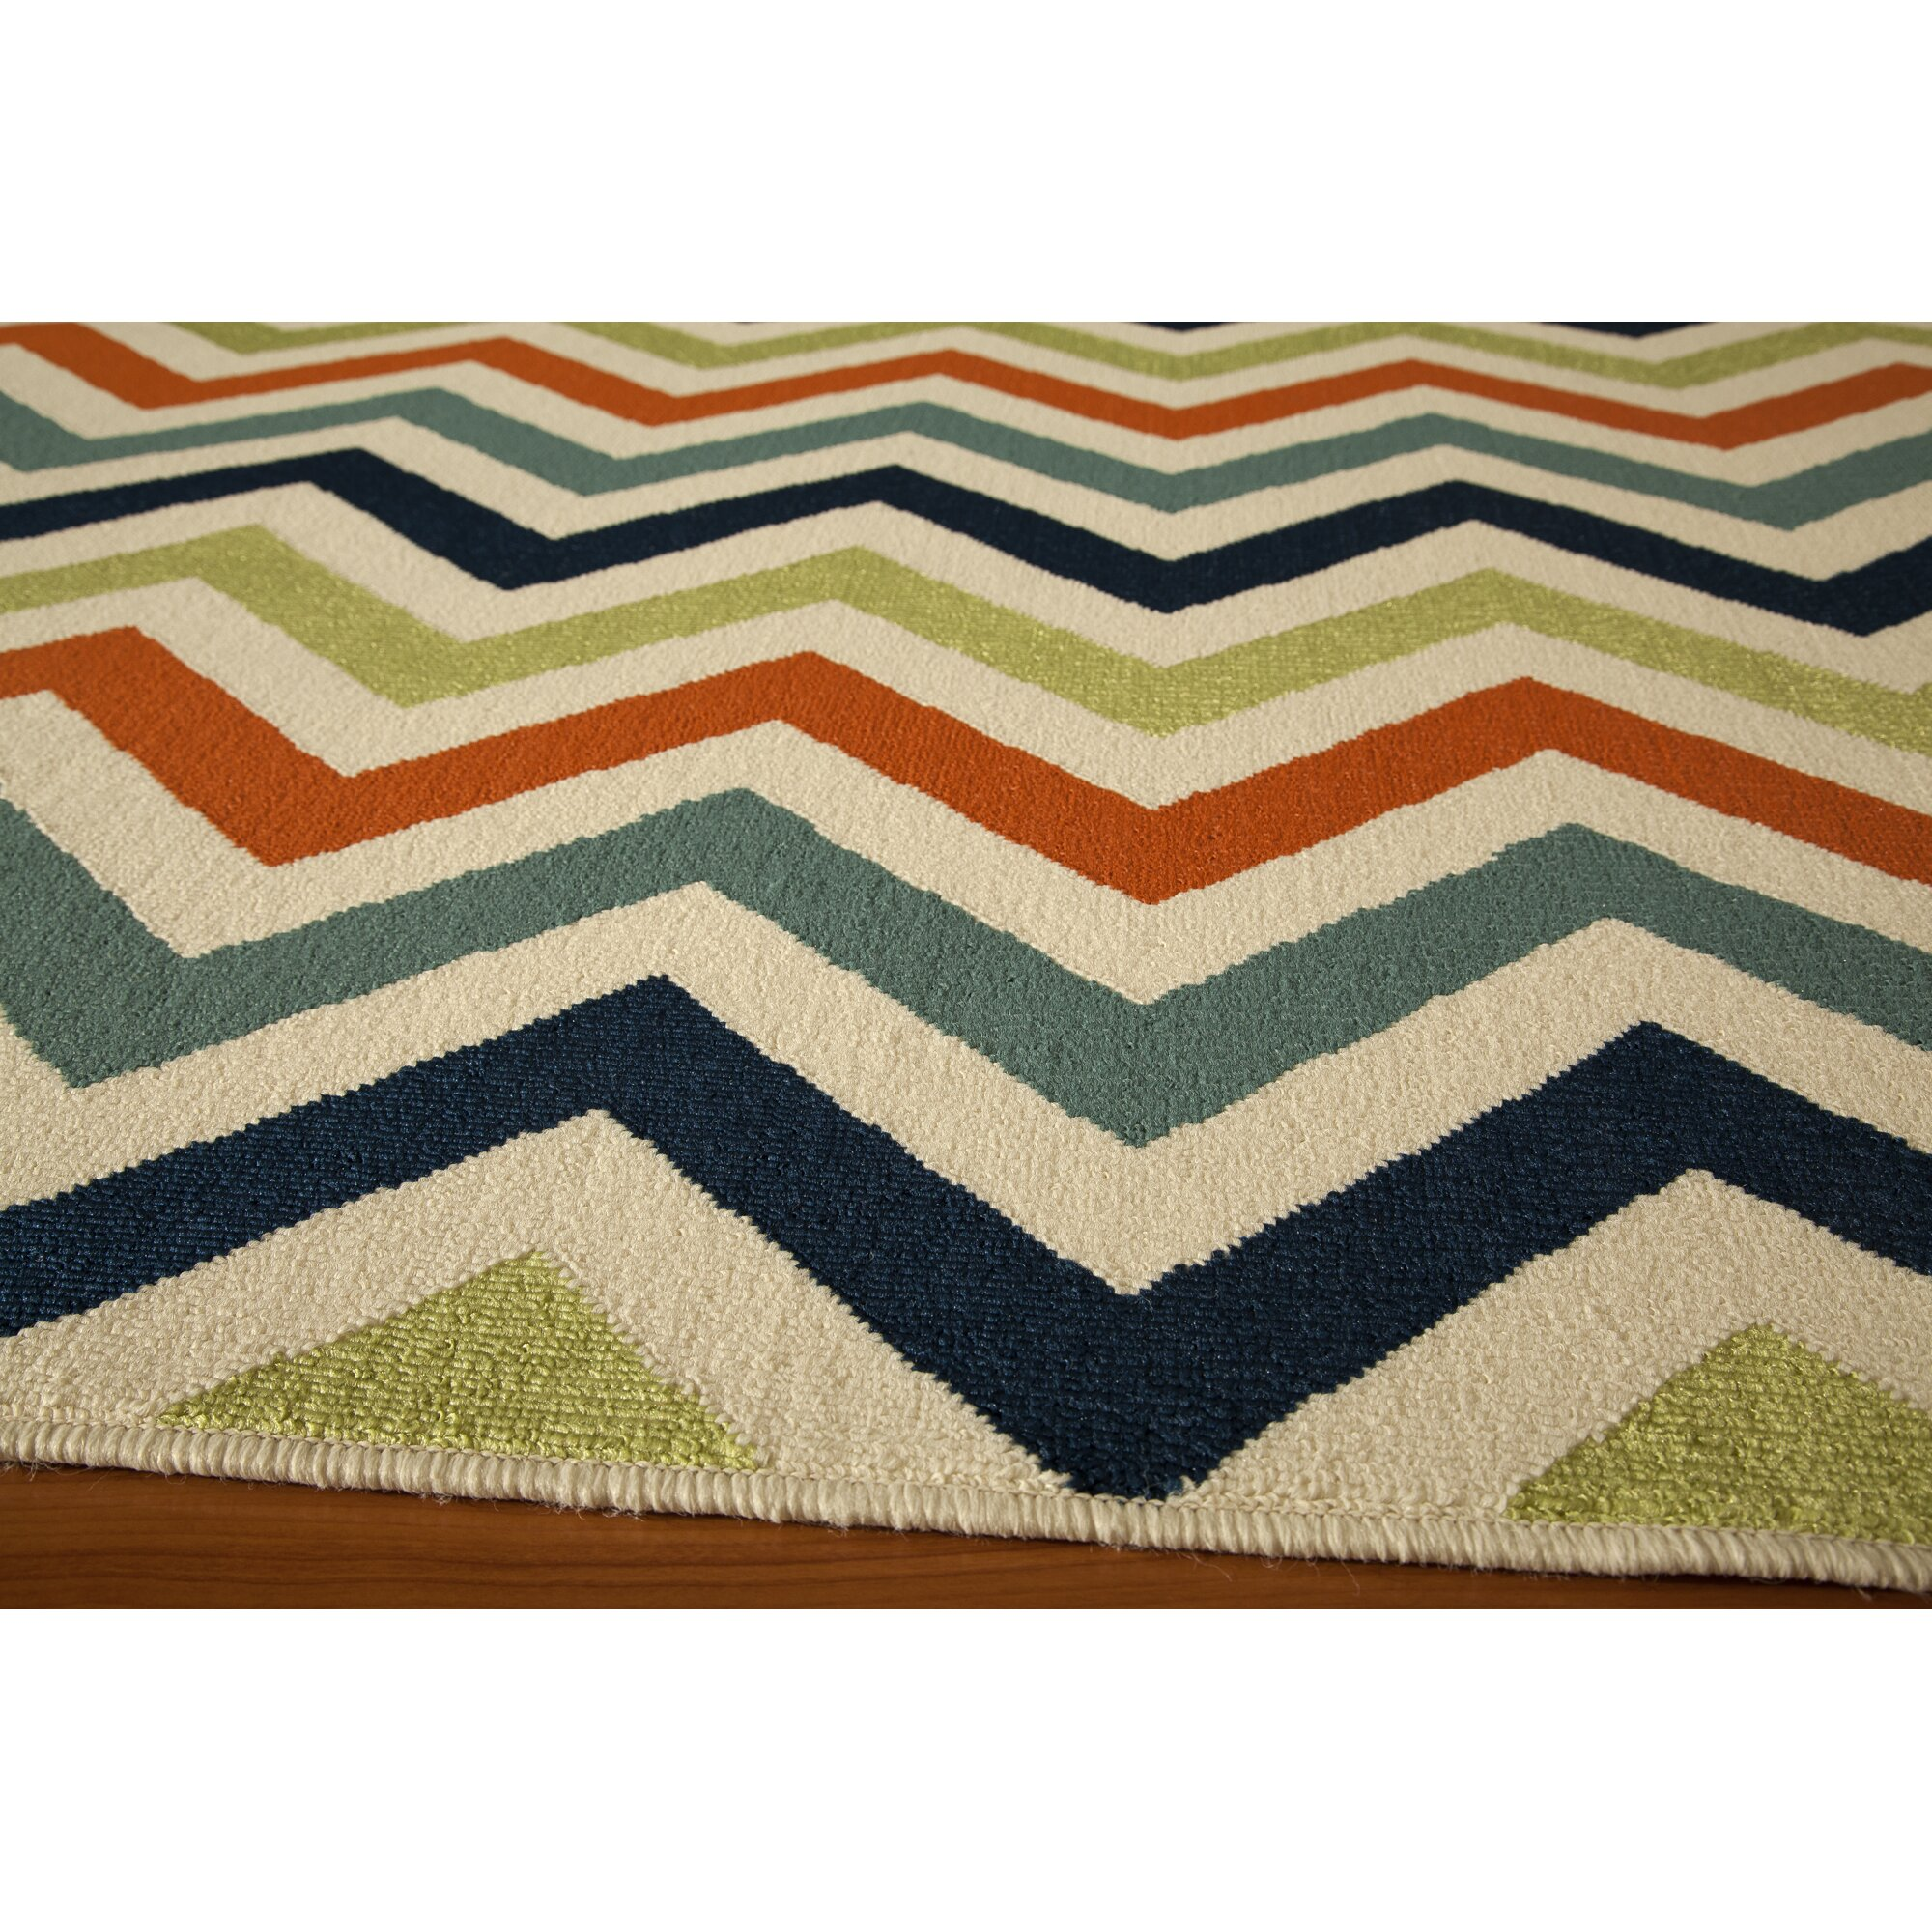 Breakwater Bay Norris Green Blue Indoor Outdoor Area Rug